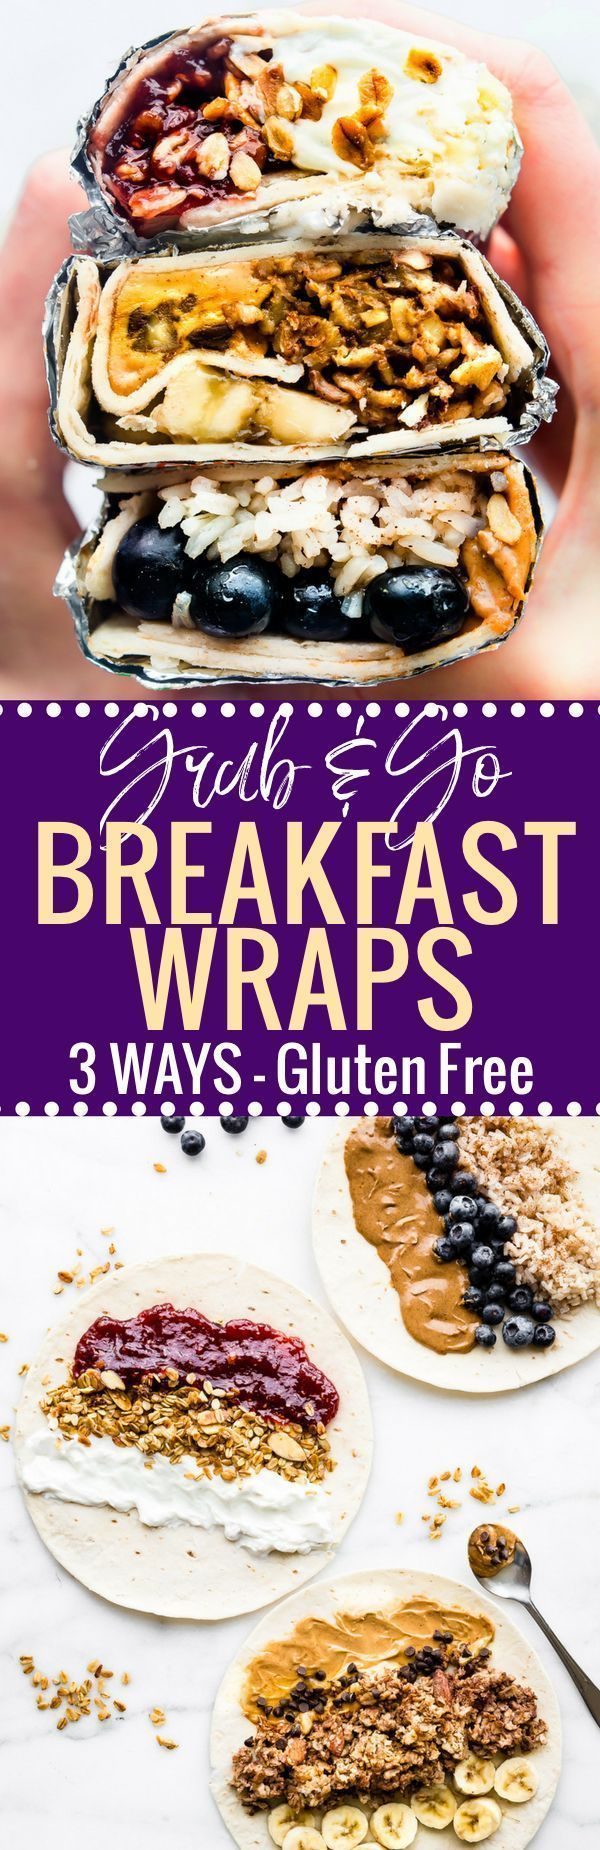 These sweet Gluten Free breakfast wraps are the perfect grab and go breakfast! Portable, freezer friendly, and filled with wholesome simple ingredients! Literally a healthy breakfast bowl wrapped up to go, 3 ways! Healthy breakfast wraps will satisfy your hunger and busy schedule. http://www.cottercrunch.com #udisglutenfree